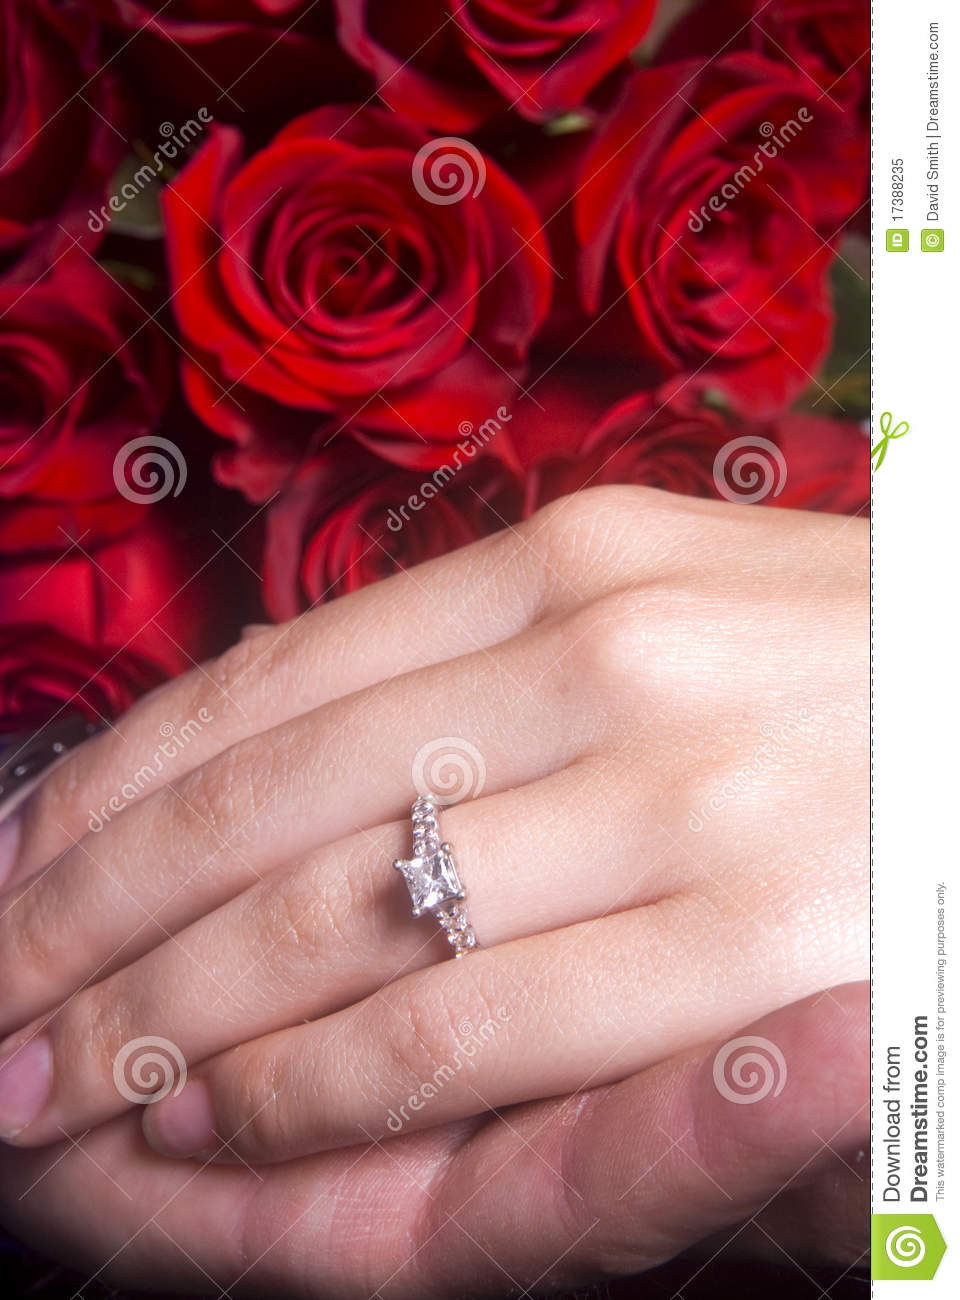 Husband Wife Hands Showing Engagement Ring Stock Images - 71 Photos